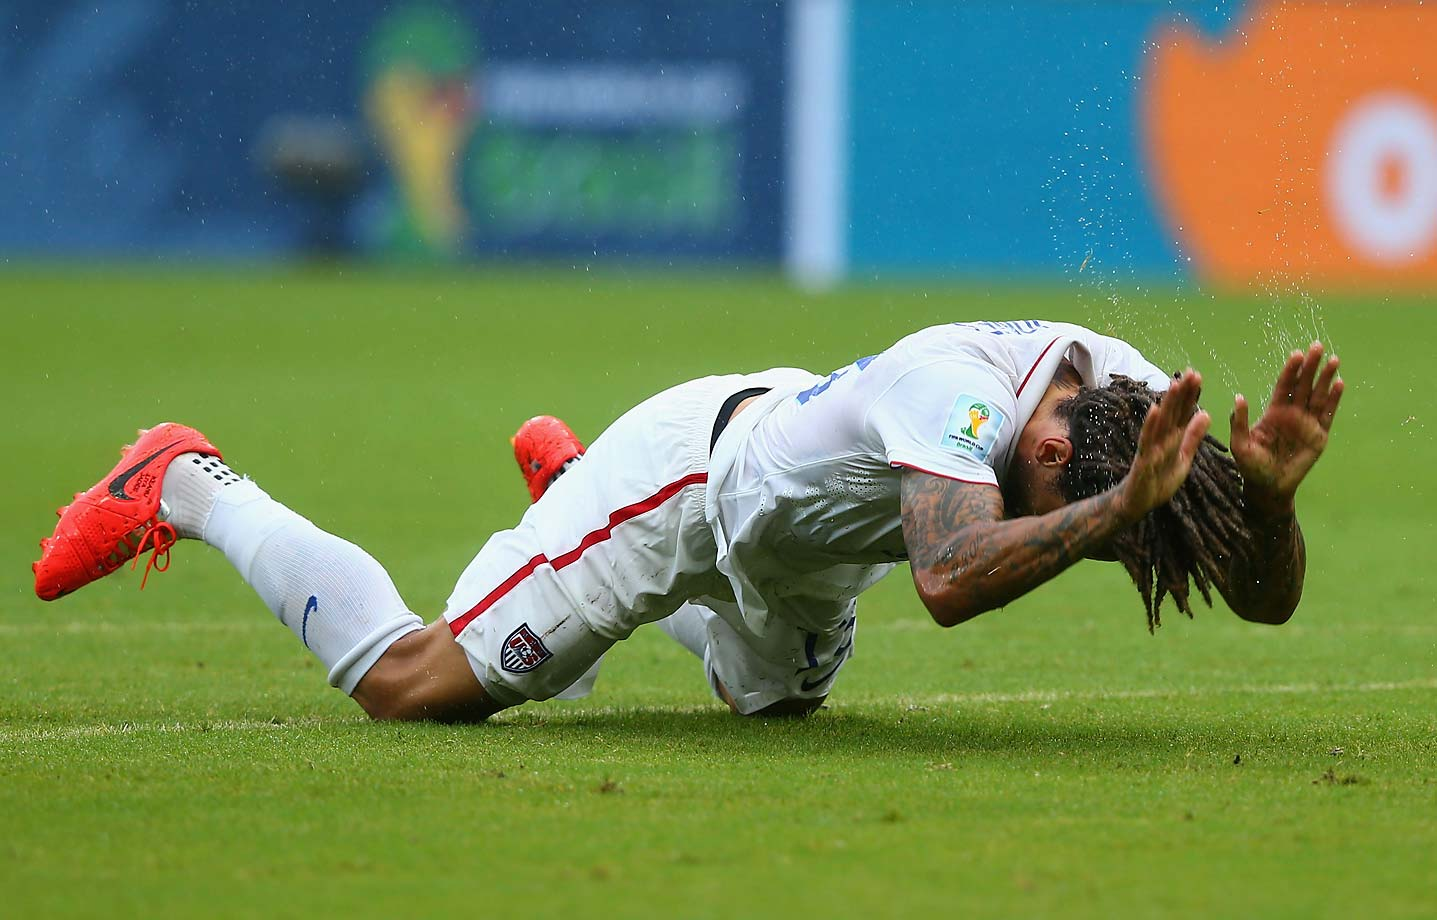 Jermaine Jones reacts in disappointment after failing to take advantage of a scoring chance.